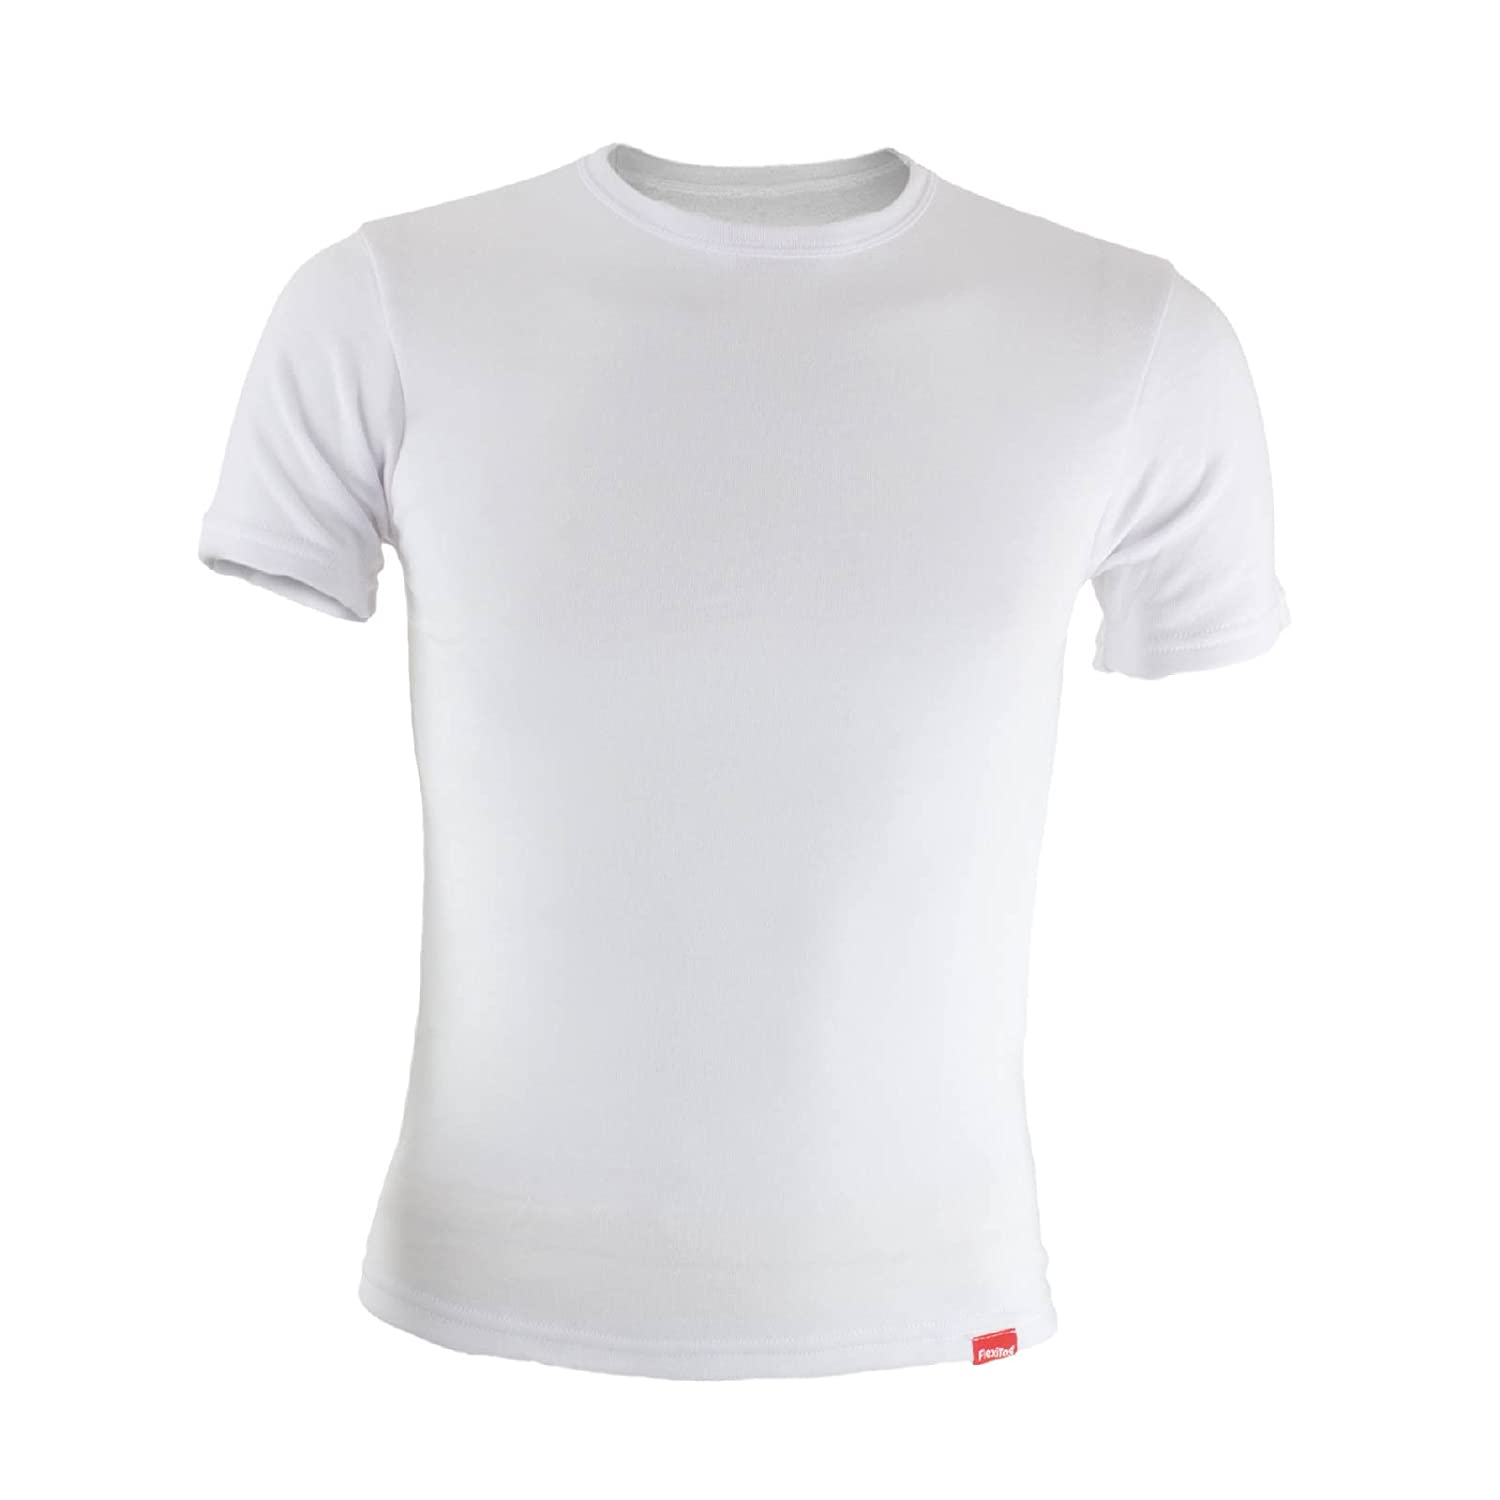 FlexiTog - White Thermal Baselayer Short Sleeve T-shirt